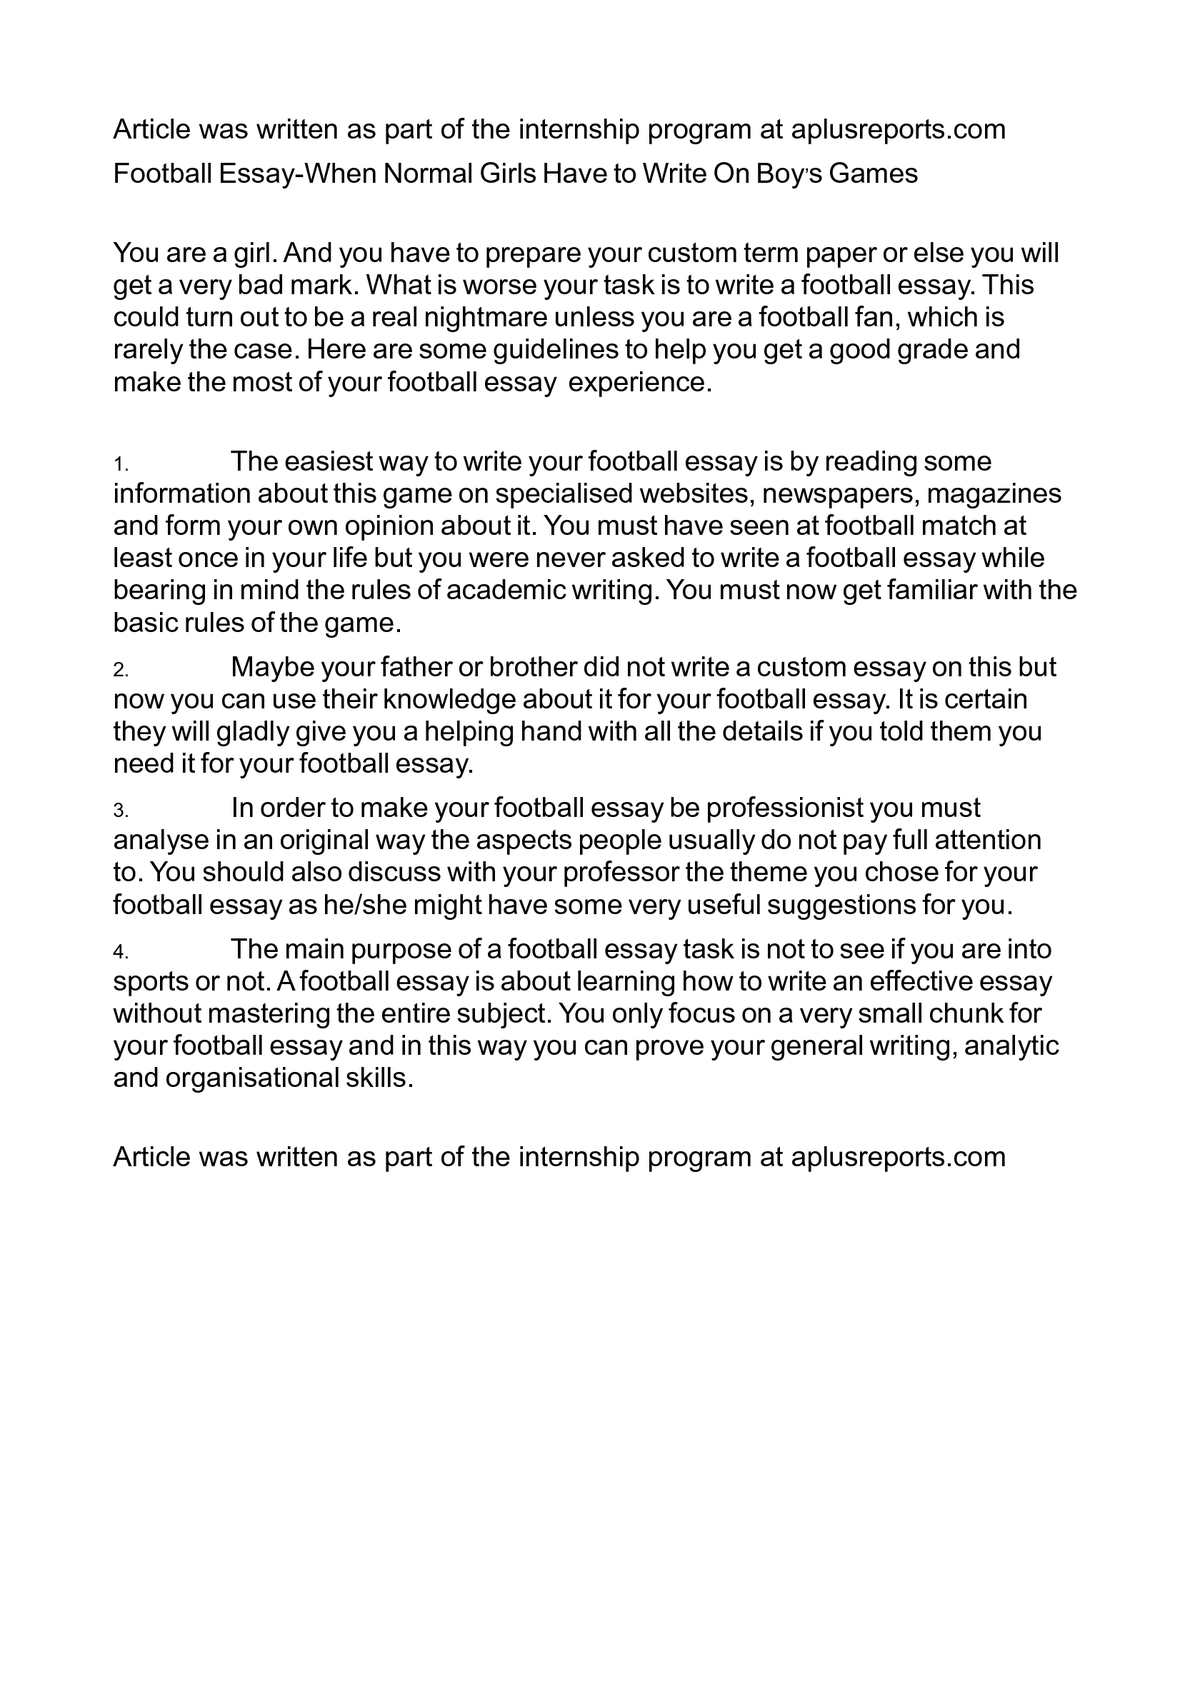 011 Essay Example On Football Top Match For Class 7 Player Full